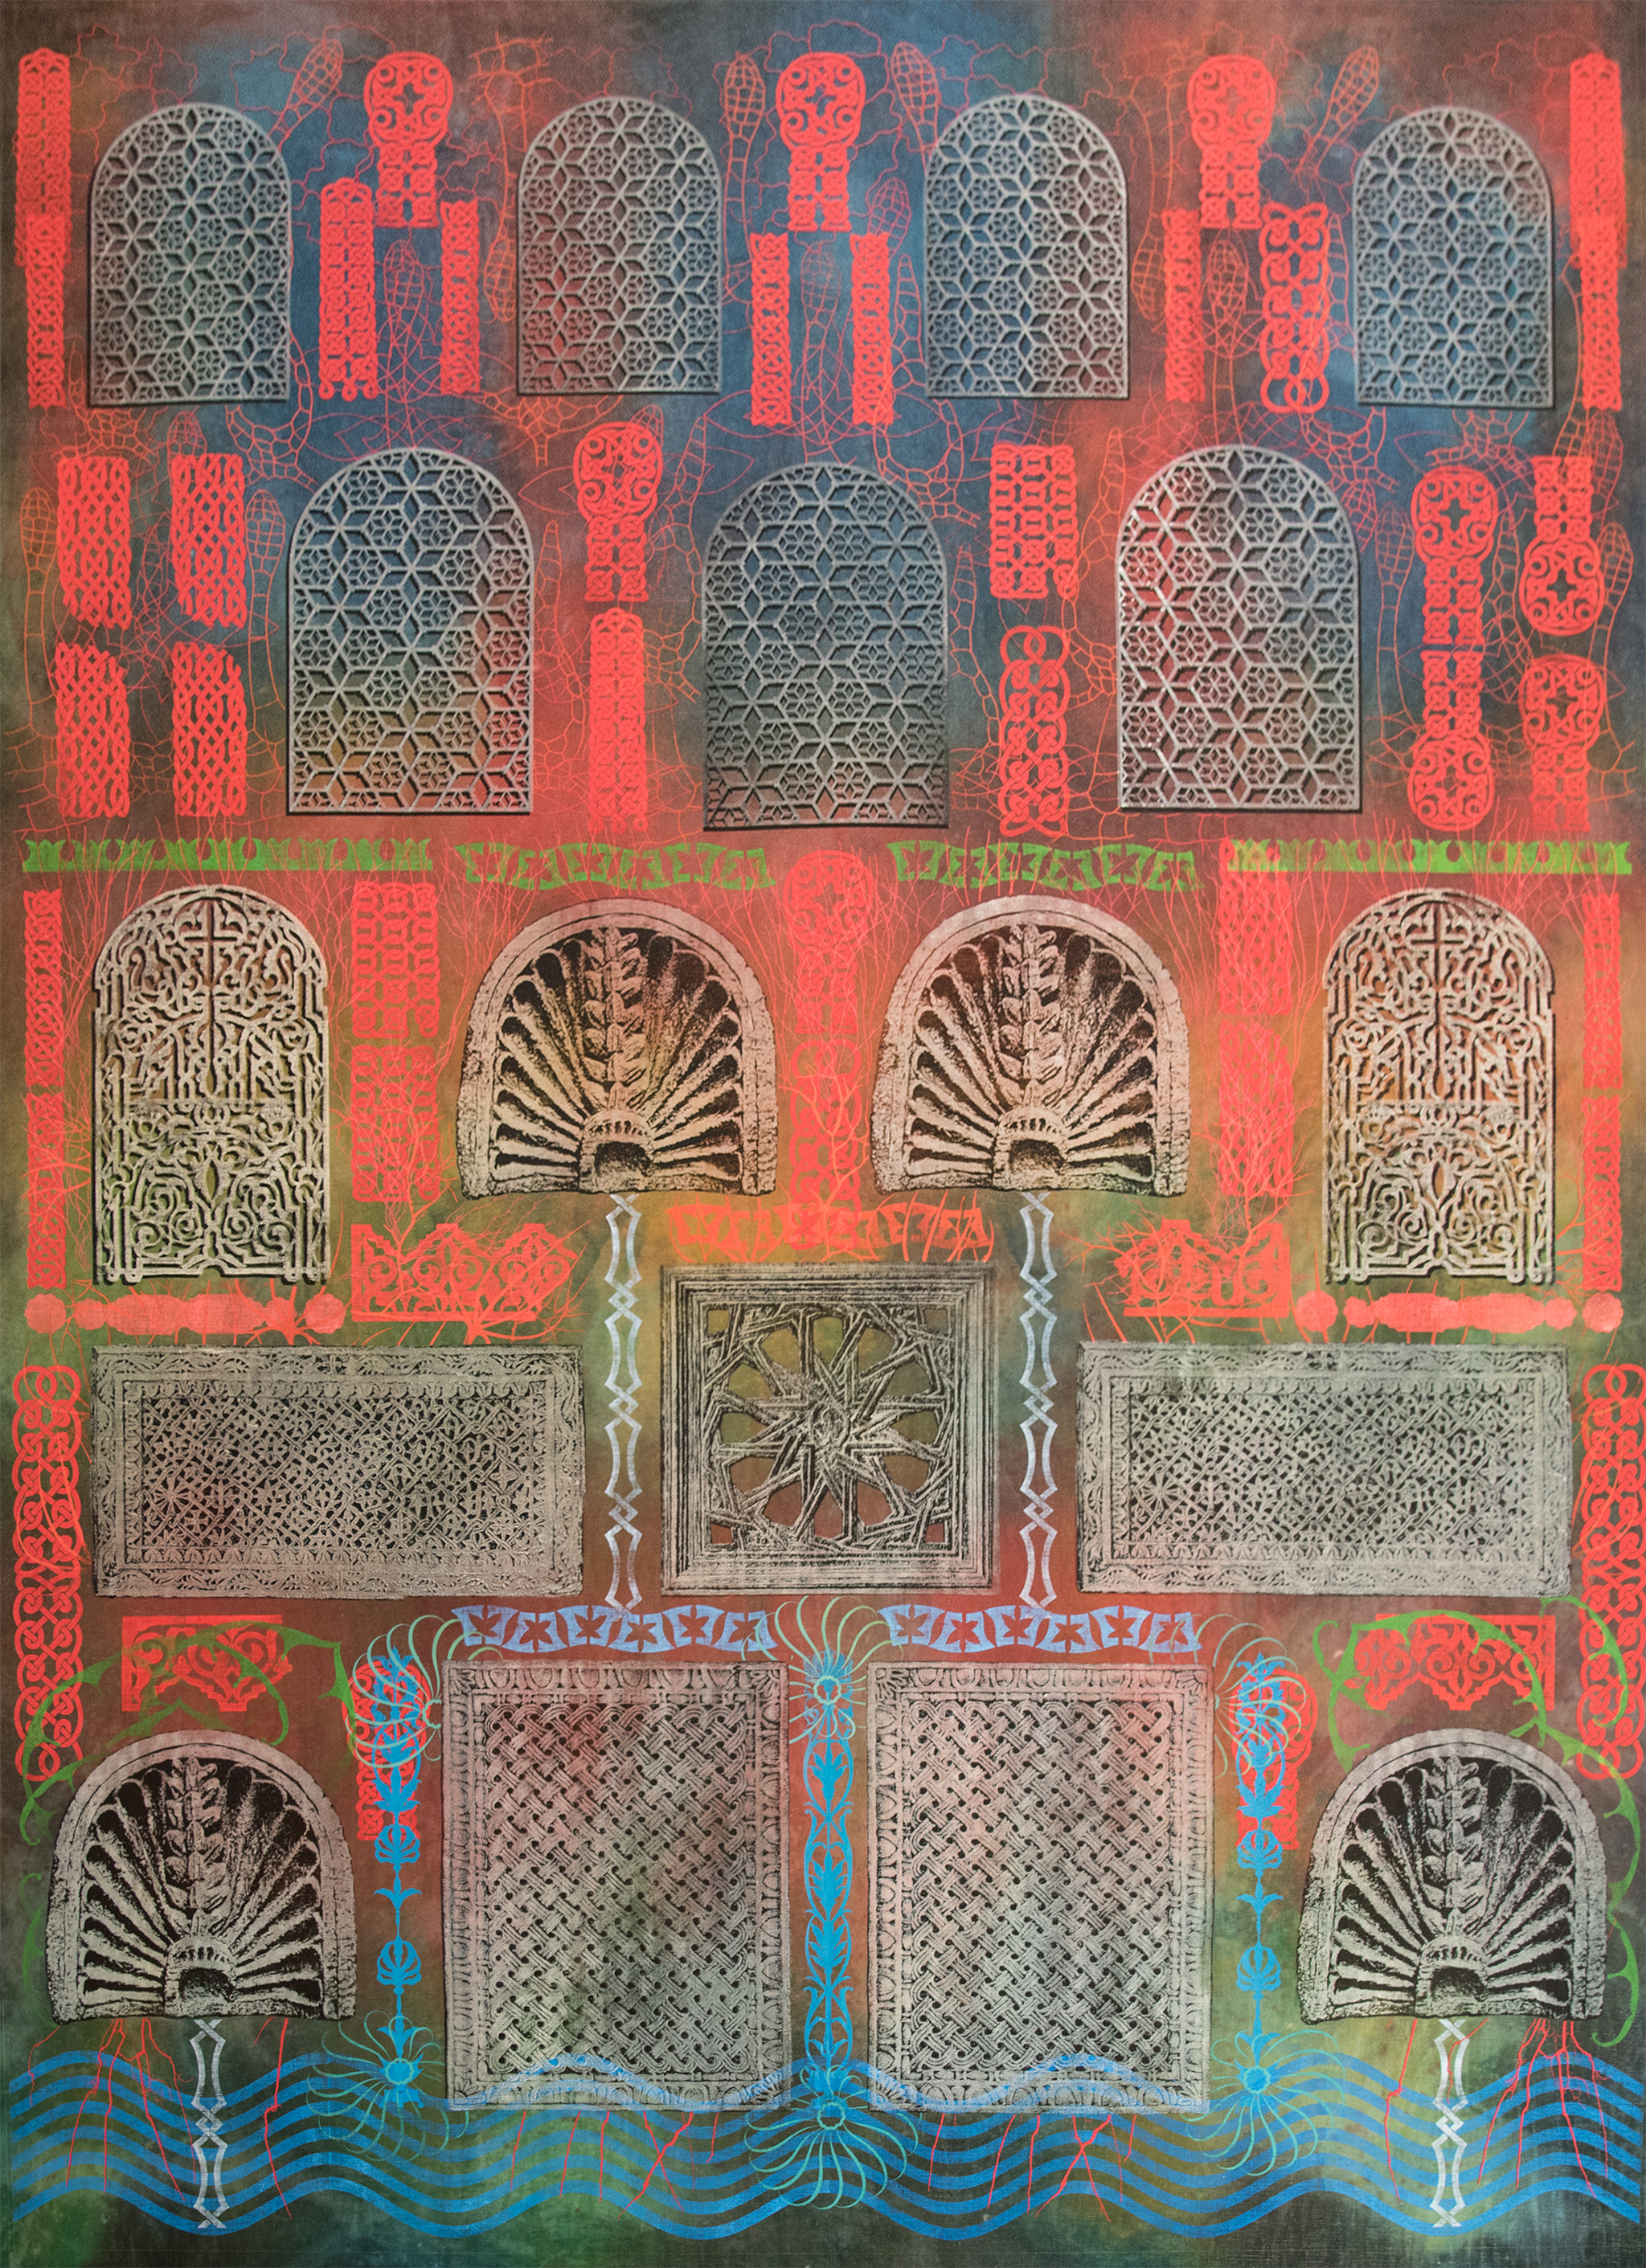 Philip Taaffe, Imaginary Fountain, 2014